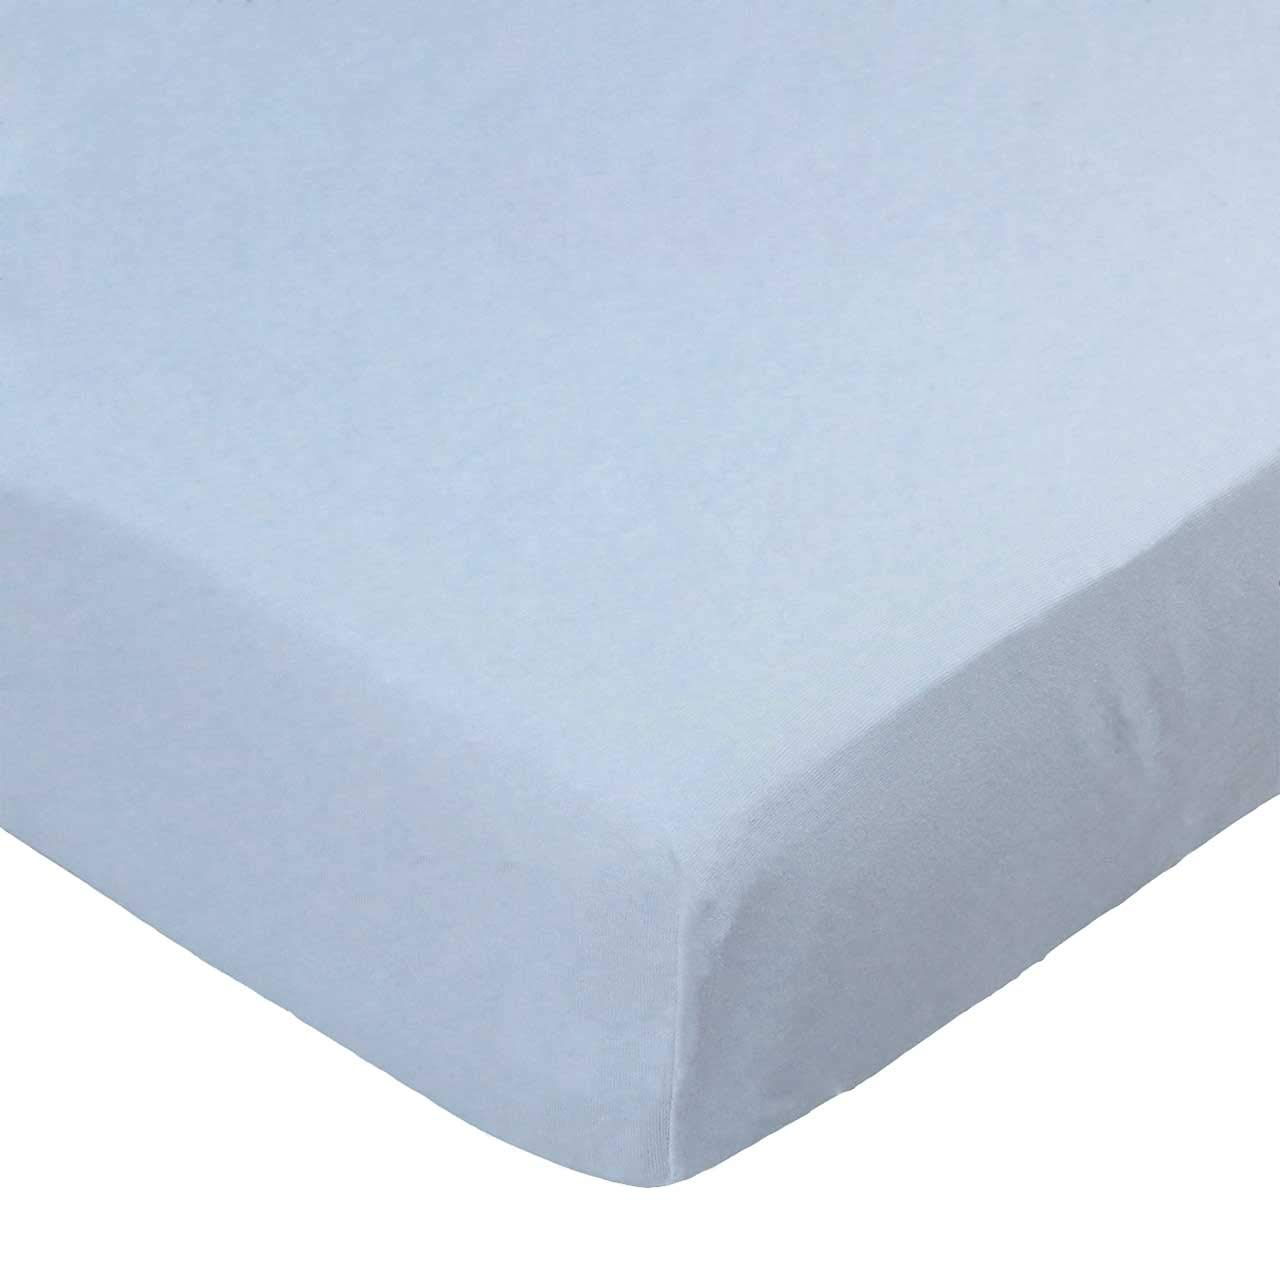 SheetWorld Fitted Pack N Play (Graco) Sheet - Organic Baby Blue Jersey Knit - Made In USA